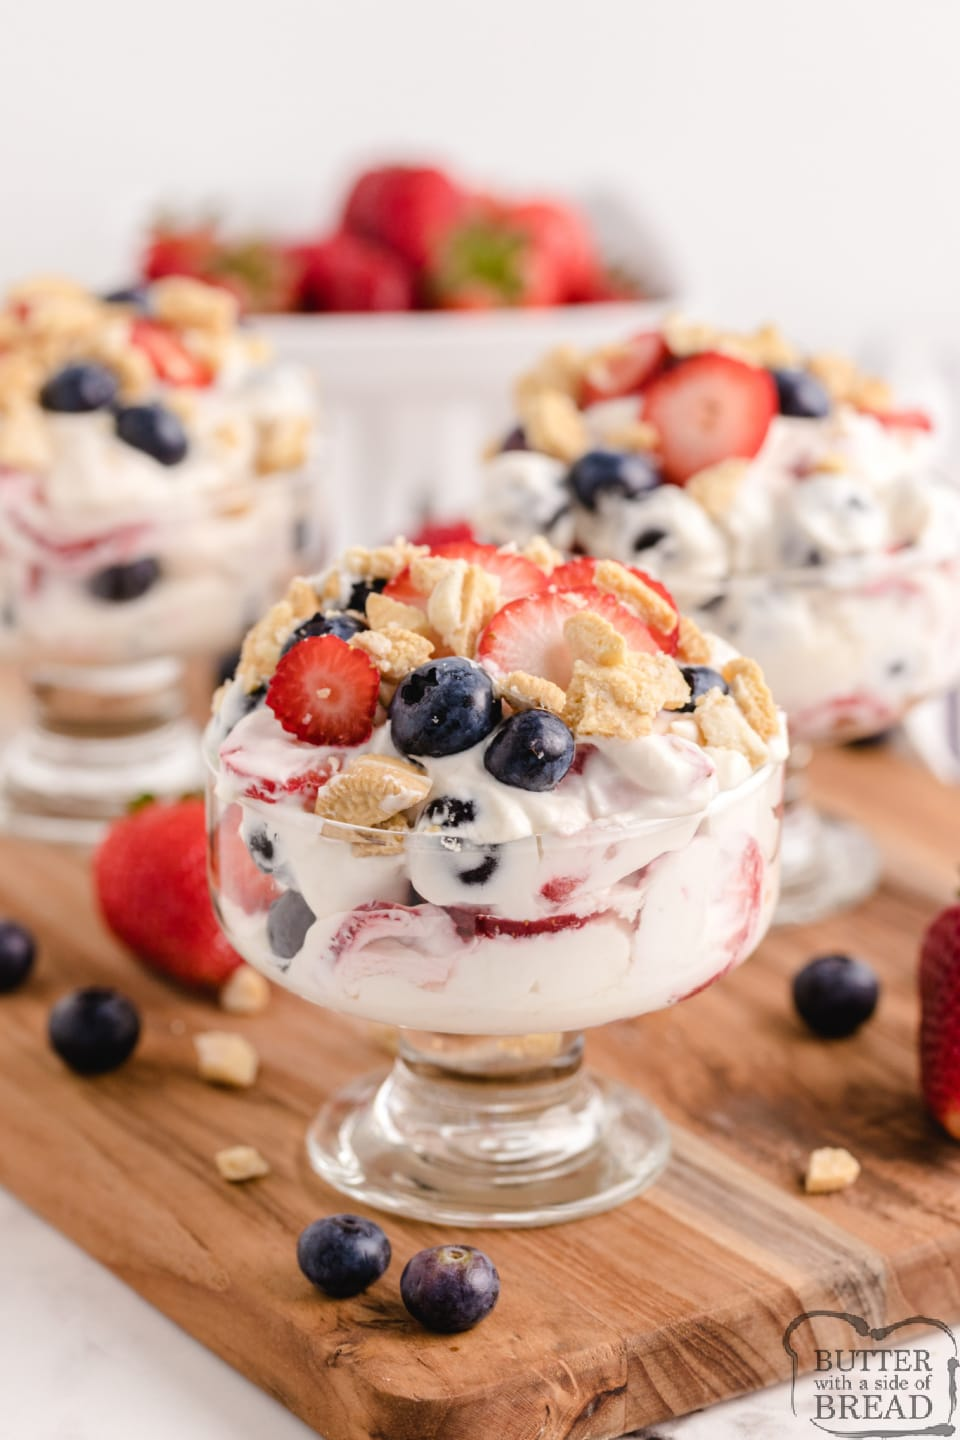 Lemon Berry Yogurt Parfaits made with sweetened whipped cream, yogurt and lots of fresh berries. Simple no-bake dessert or snack that is light and delicious!